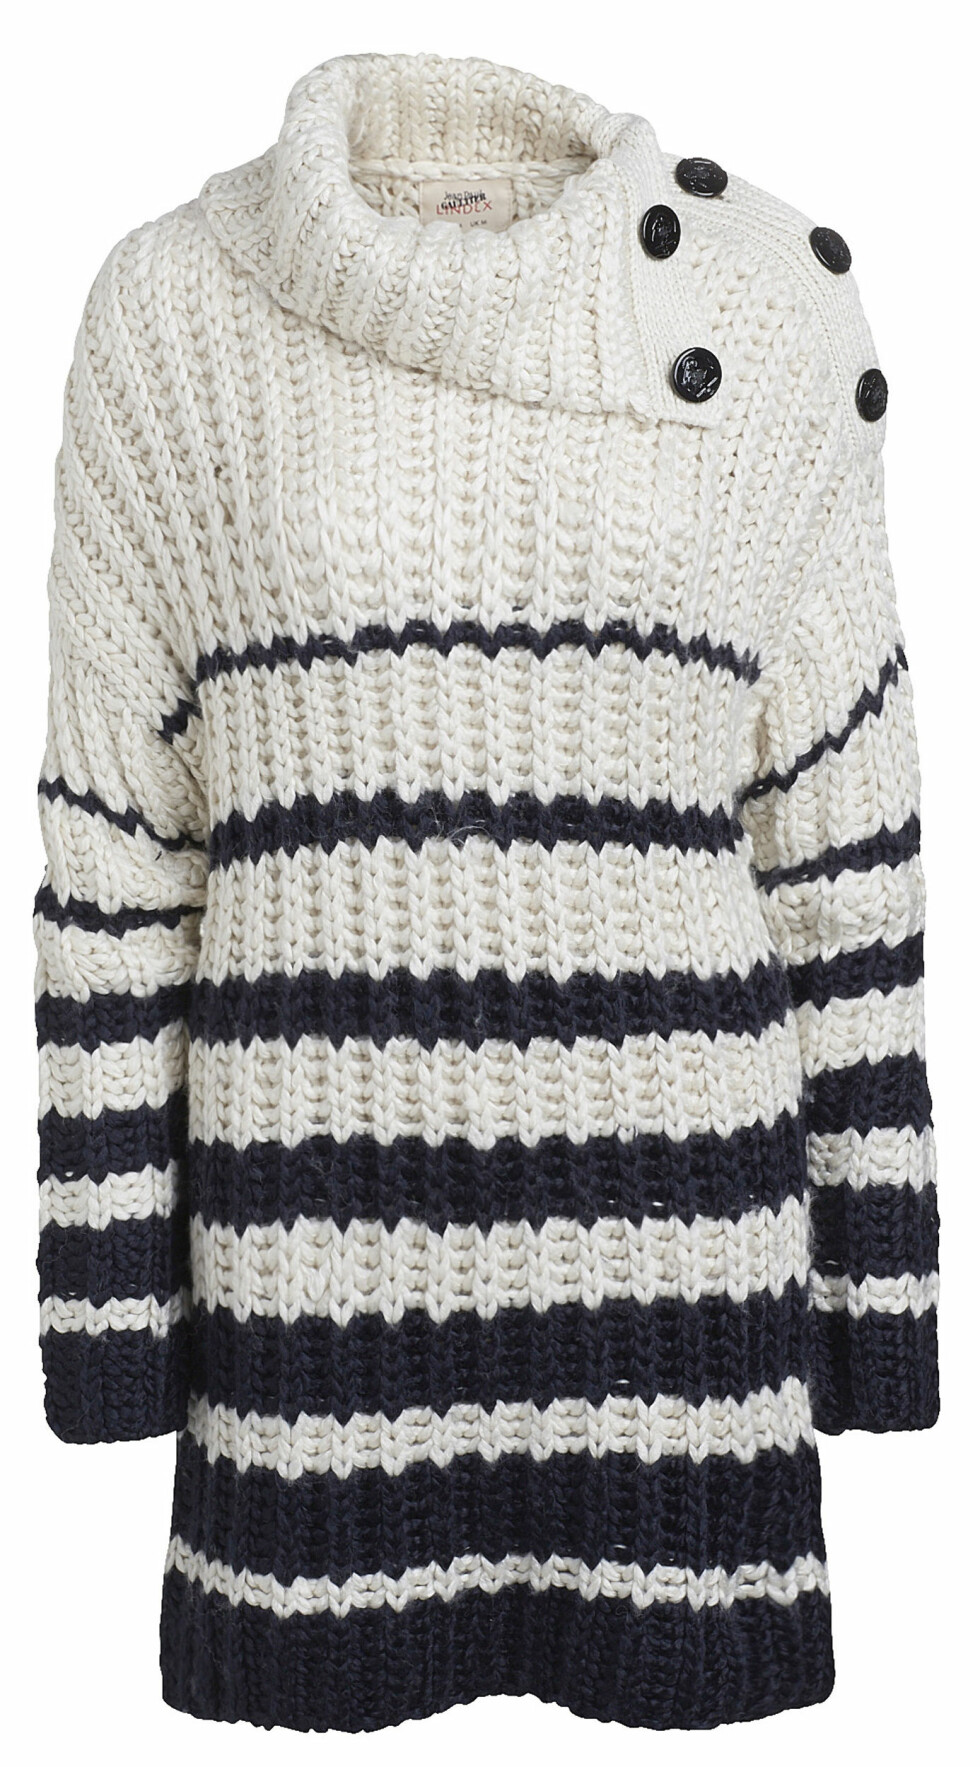 Jean Paul Gaultier for Lindex - Autumn 2014  Sweater / Composition: 80% acrylic,20% wool / Sizes: XS - L  Prices:  SE 599   NO 599   FI 59.95   EE 59.95   LV 59.95   LT 199   CZ 1499   SK 59.95   PL 229   RU 2999   BA 119.95   IS 11995   HR 459   Sales start: 2014-10-08